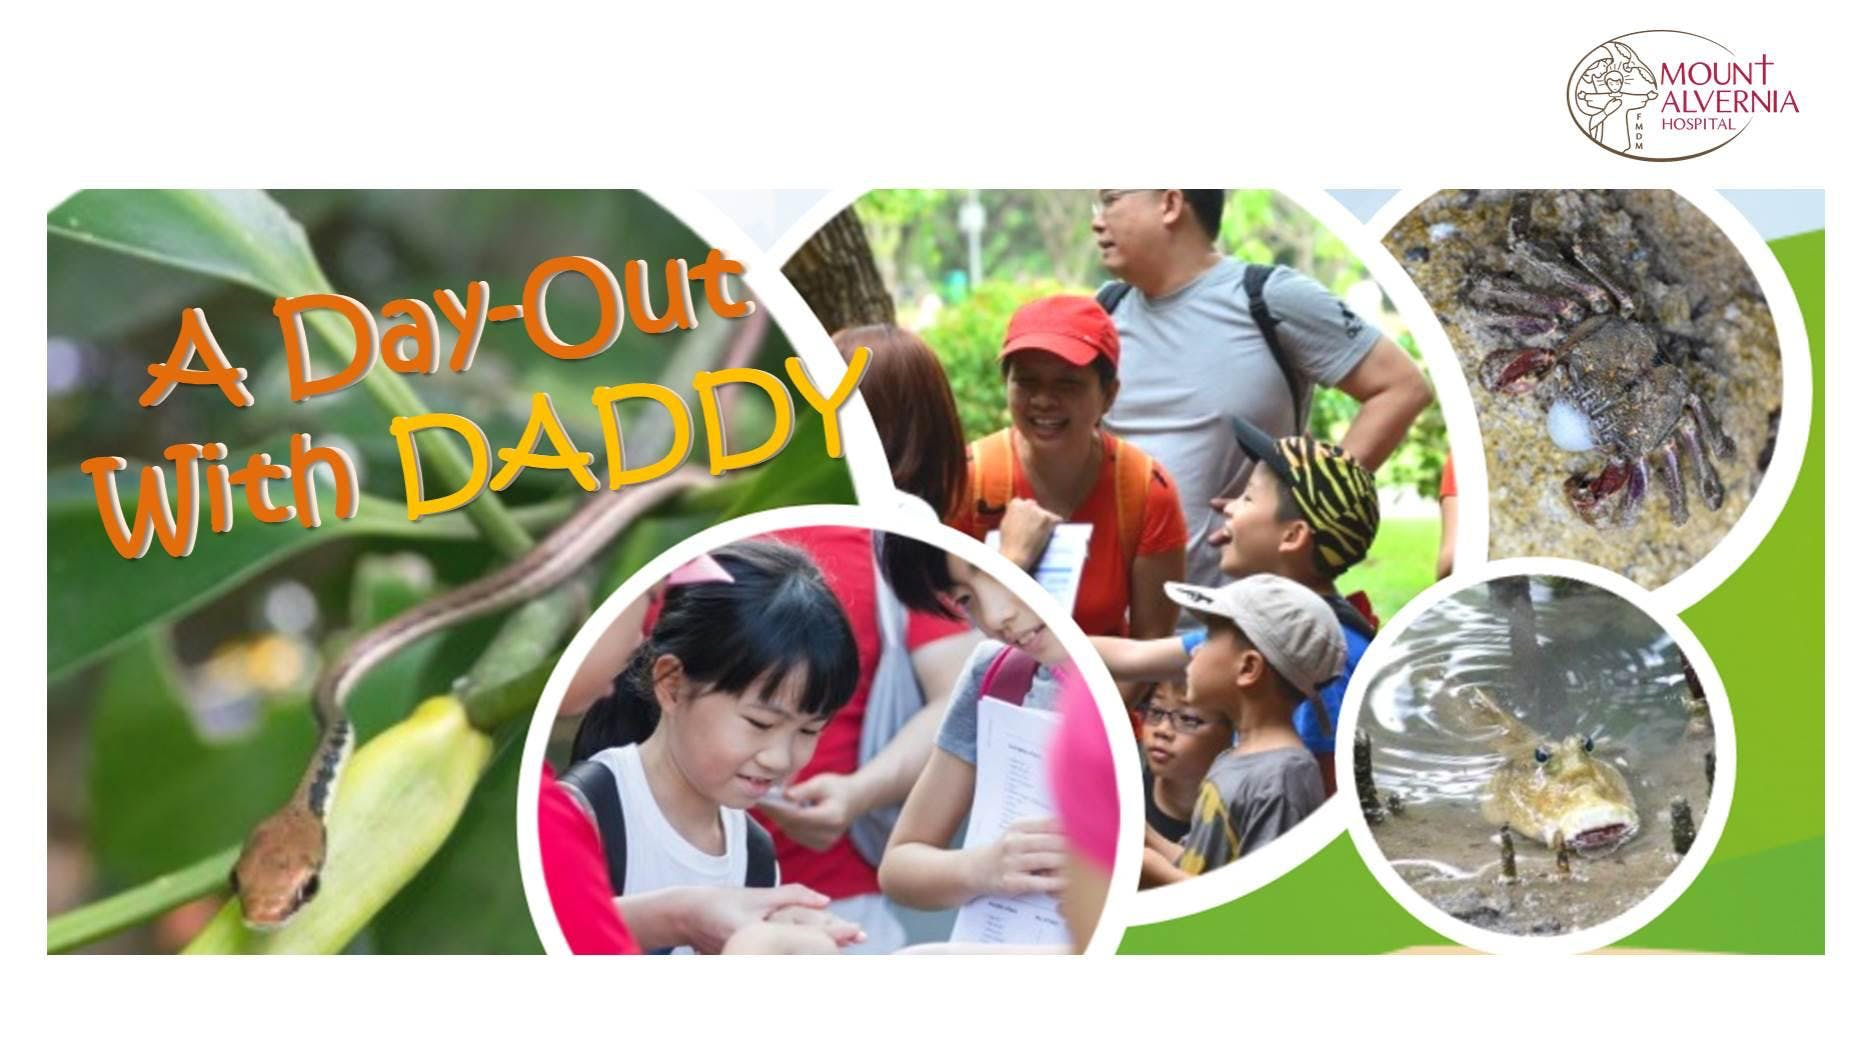 A Fun Day Out with Daddy - Happy Fathers Day